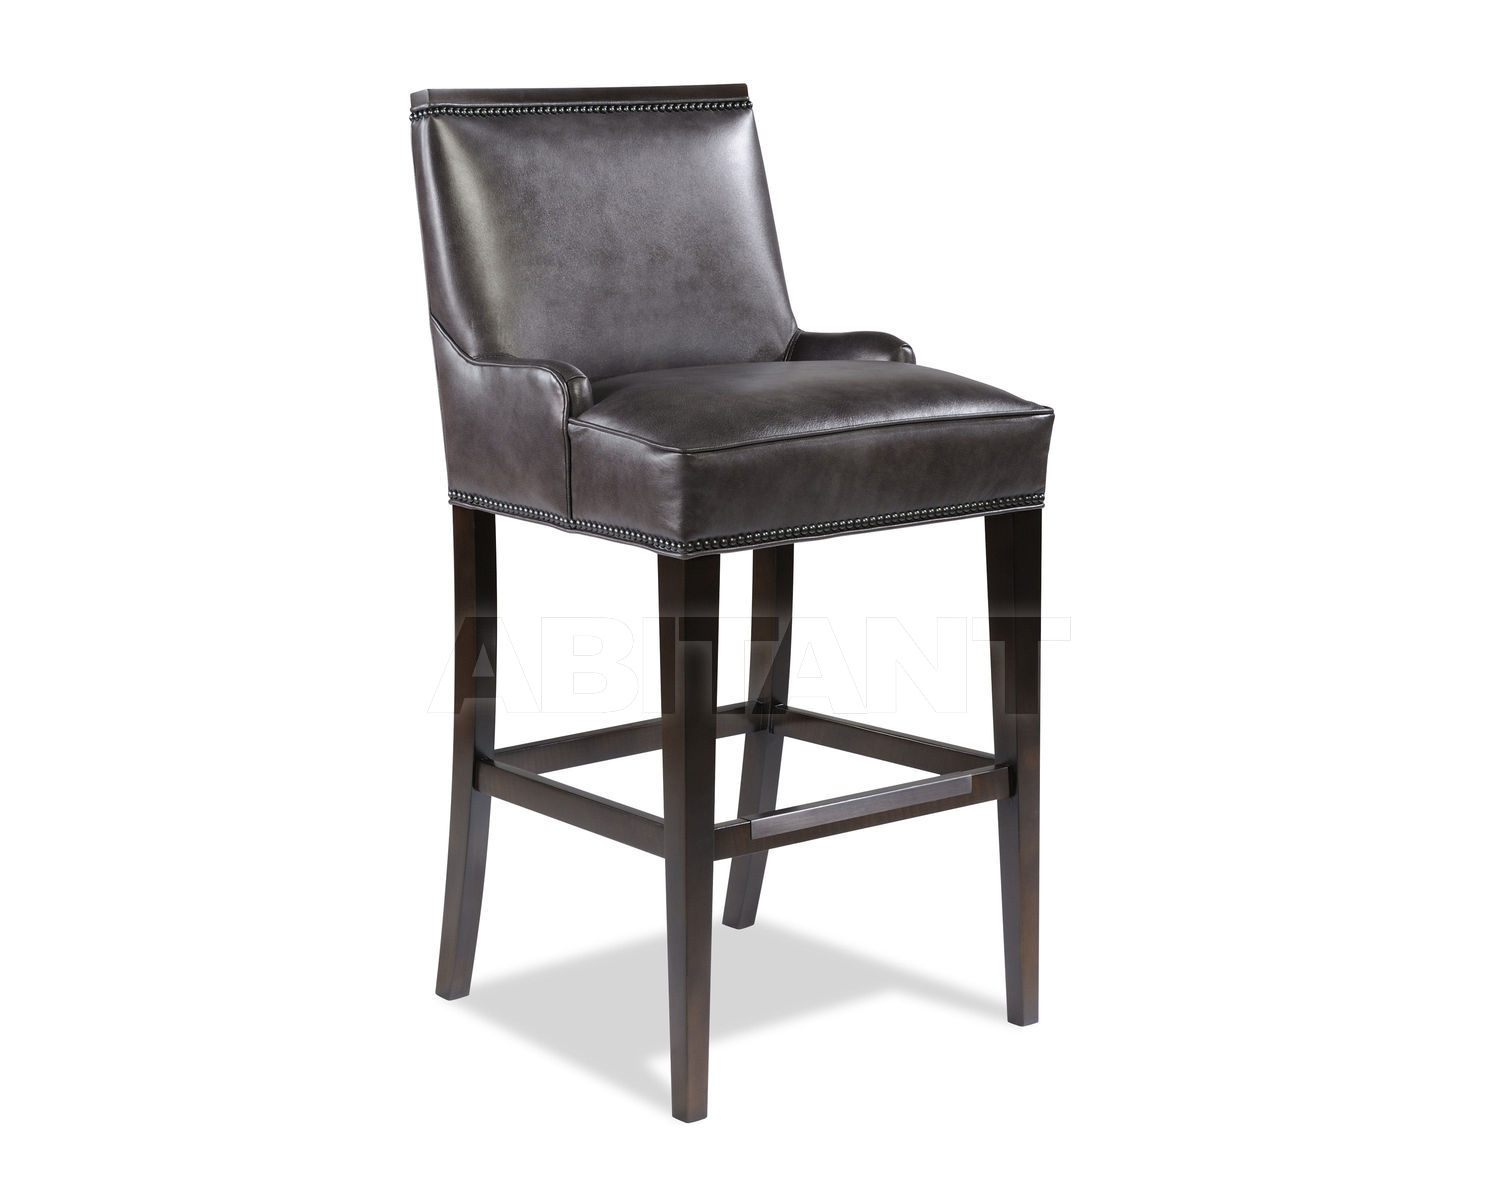 Купить Барный стул ASTORIA Taylor King DINING & GAME CHAIRS 1115-89